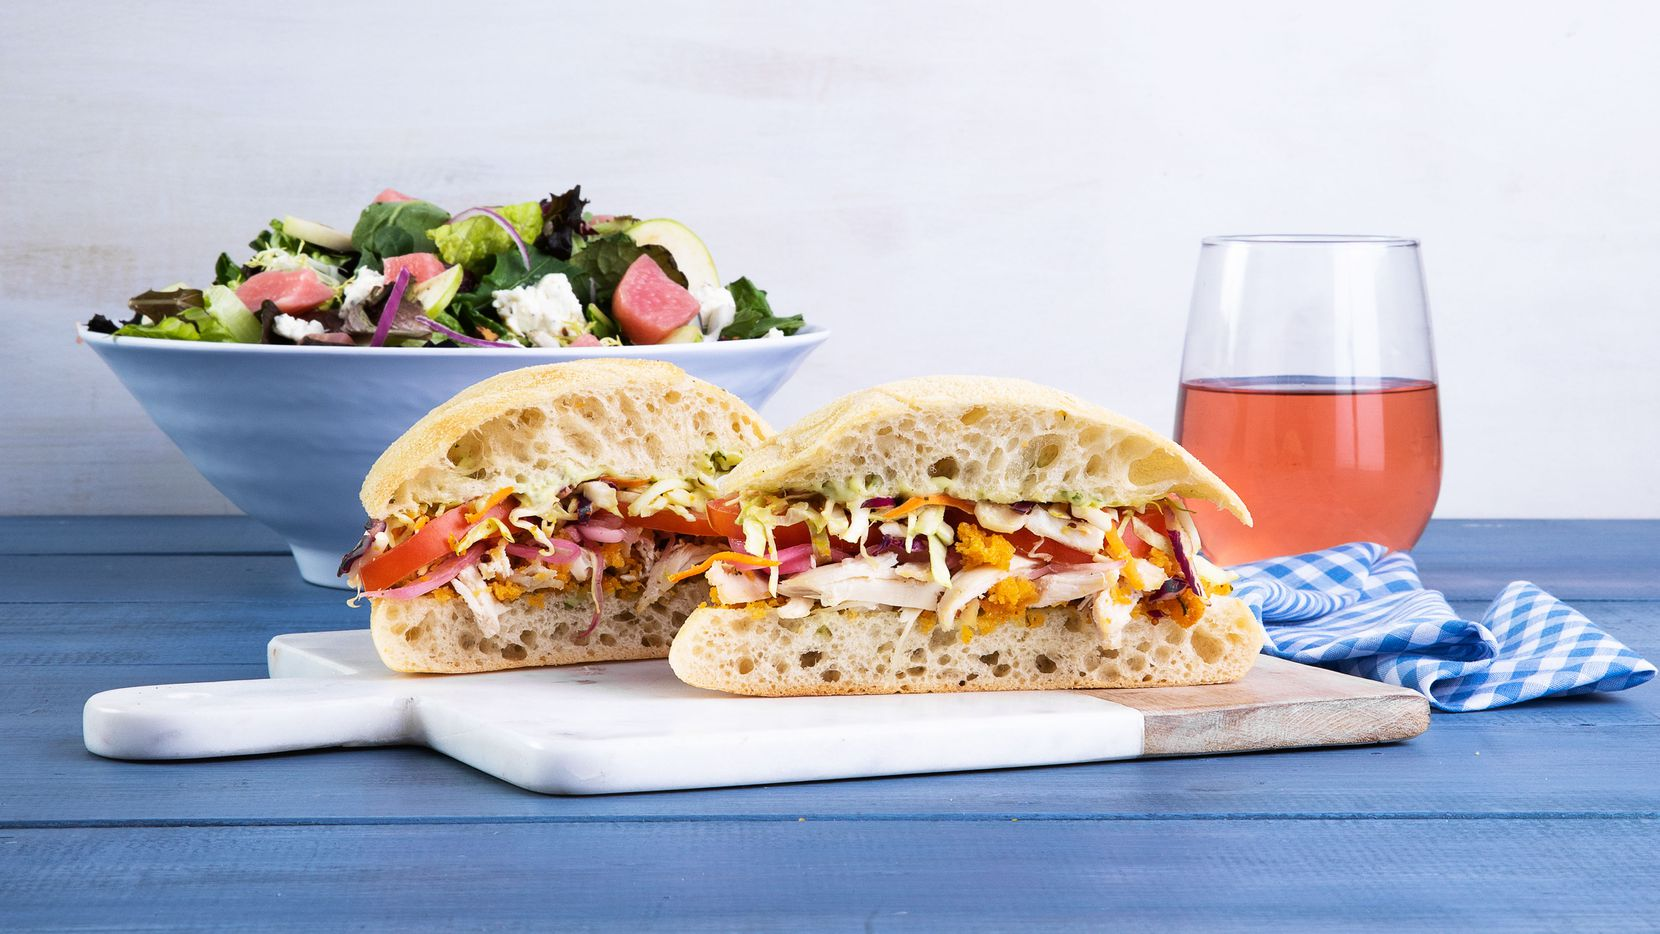 """Mendocino Farms serves a """"not so fried"""" chicken sandwich, pictured here, as well as salads. Dallas' first Mendocino Farms is expected to open in March 2020."""